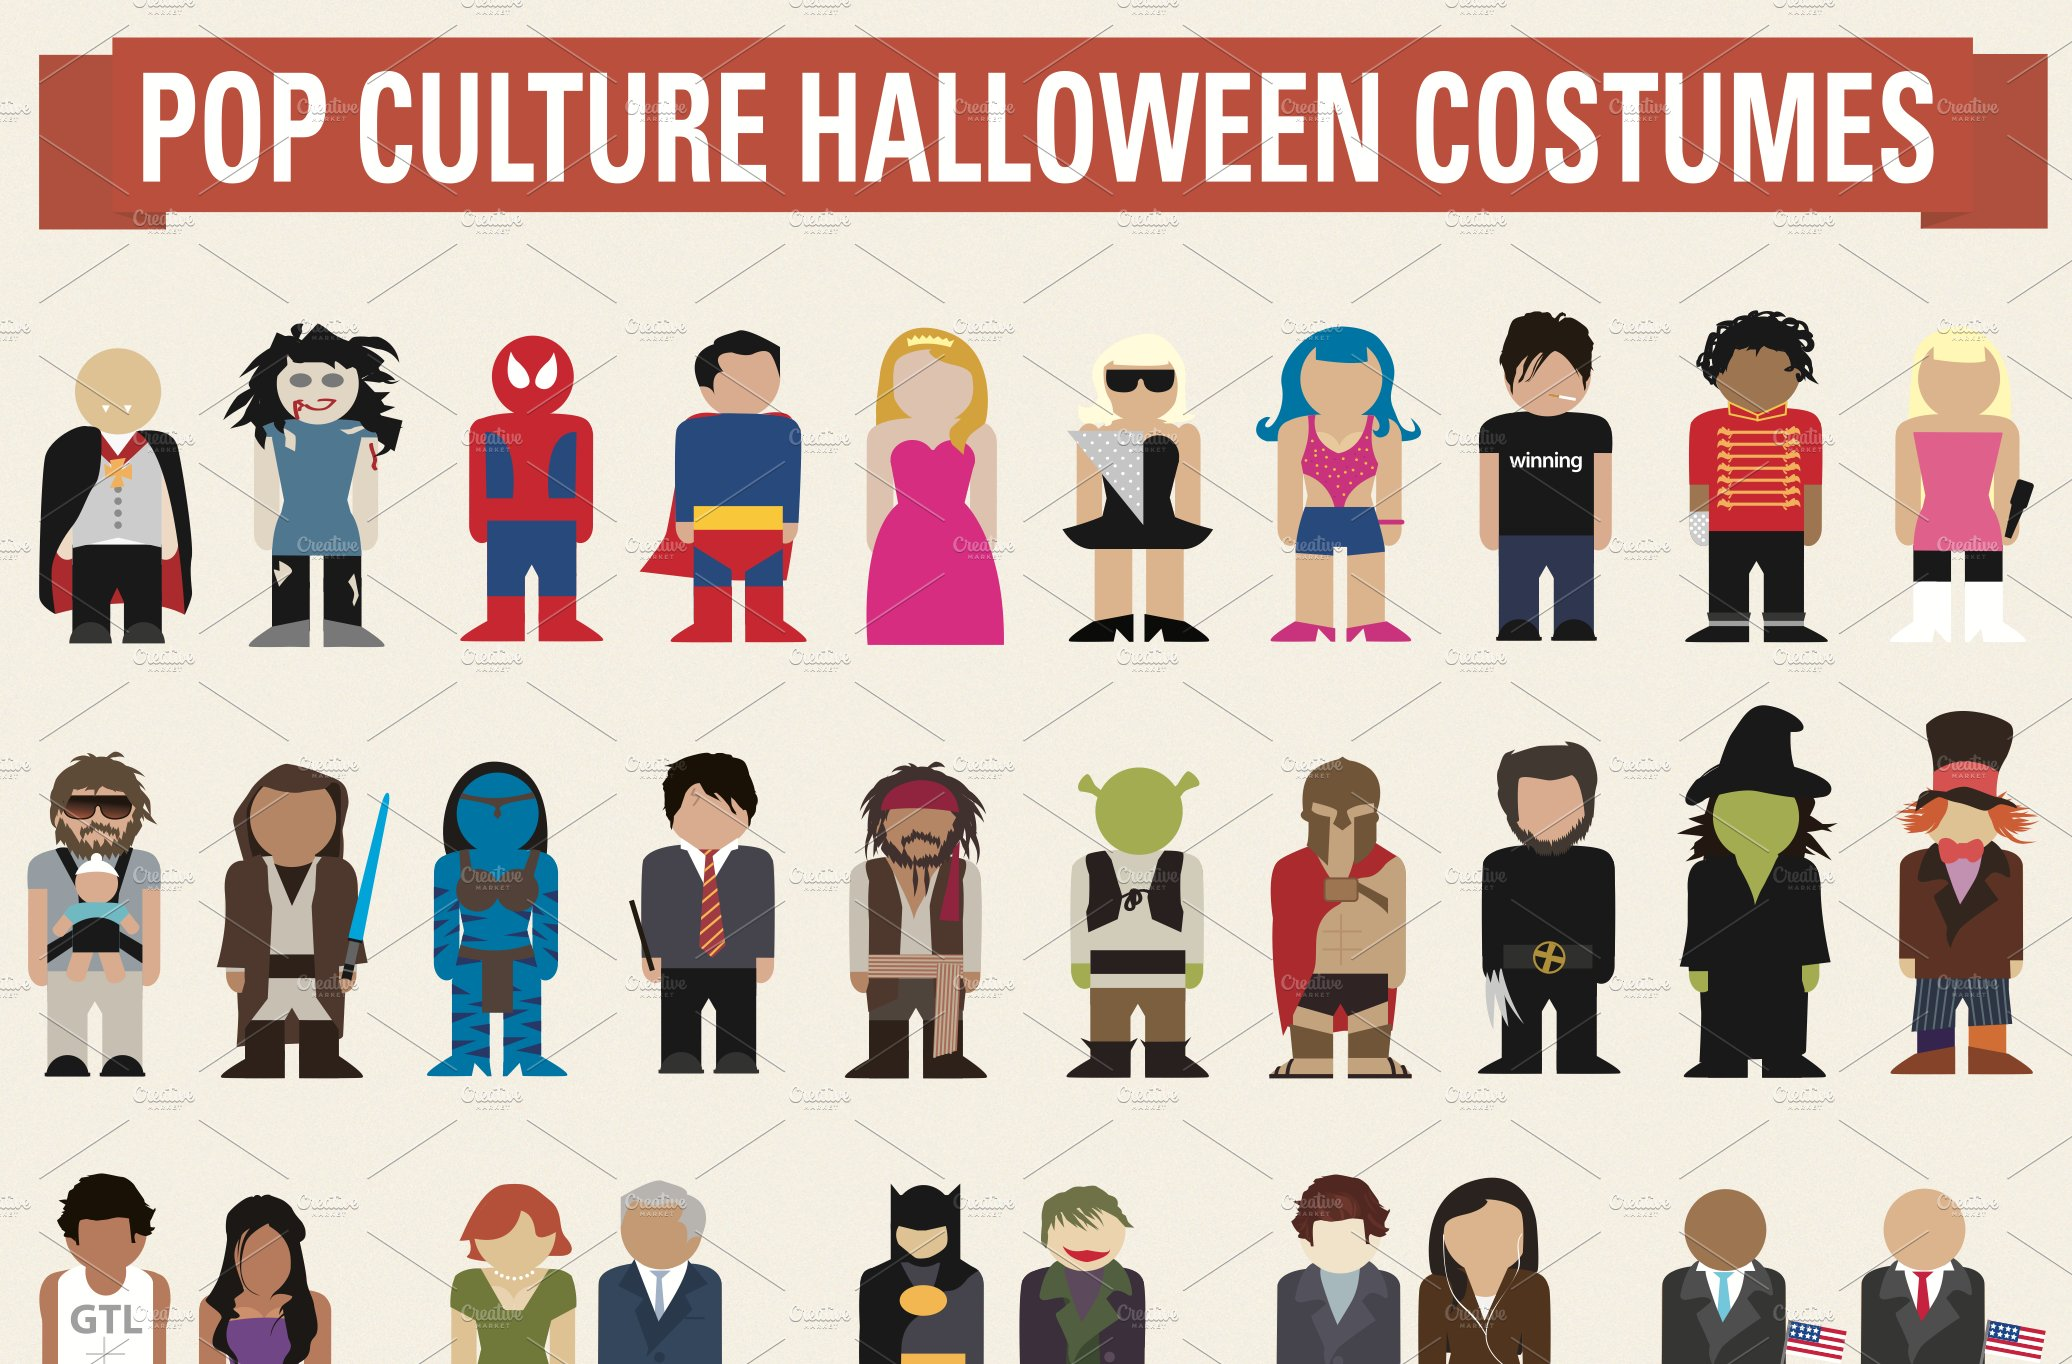 halloween pop culture costume ideas illustrations creative market - Halloween Pop Culture